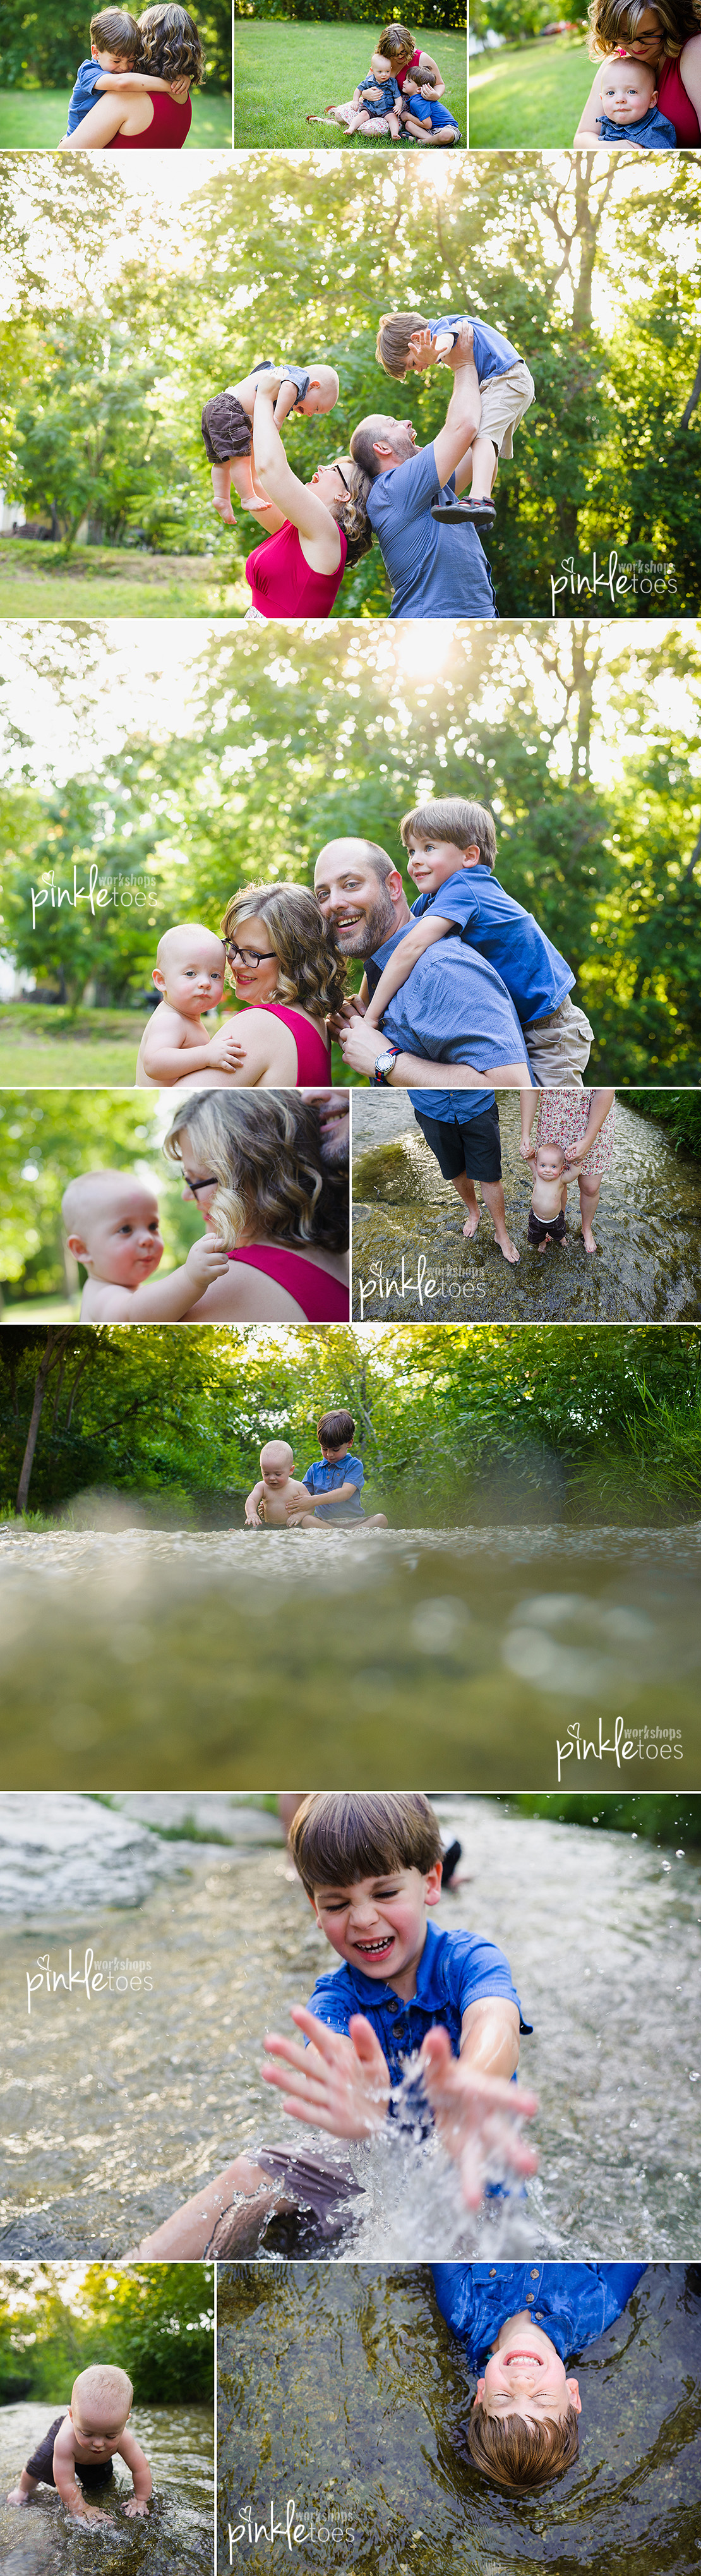 family-pinkle-toes-lifestyle-family-workshop-photography-photo-session-creek-austin-australia-texas